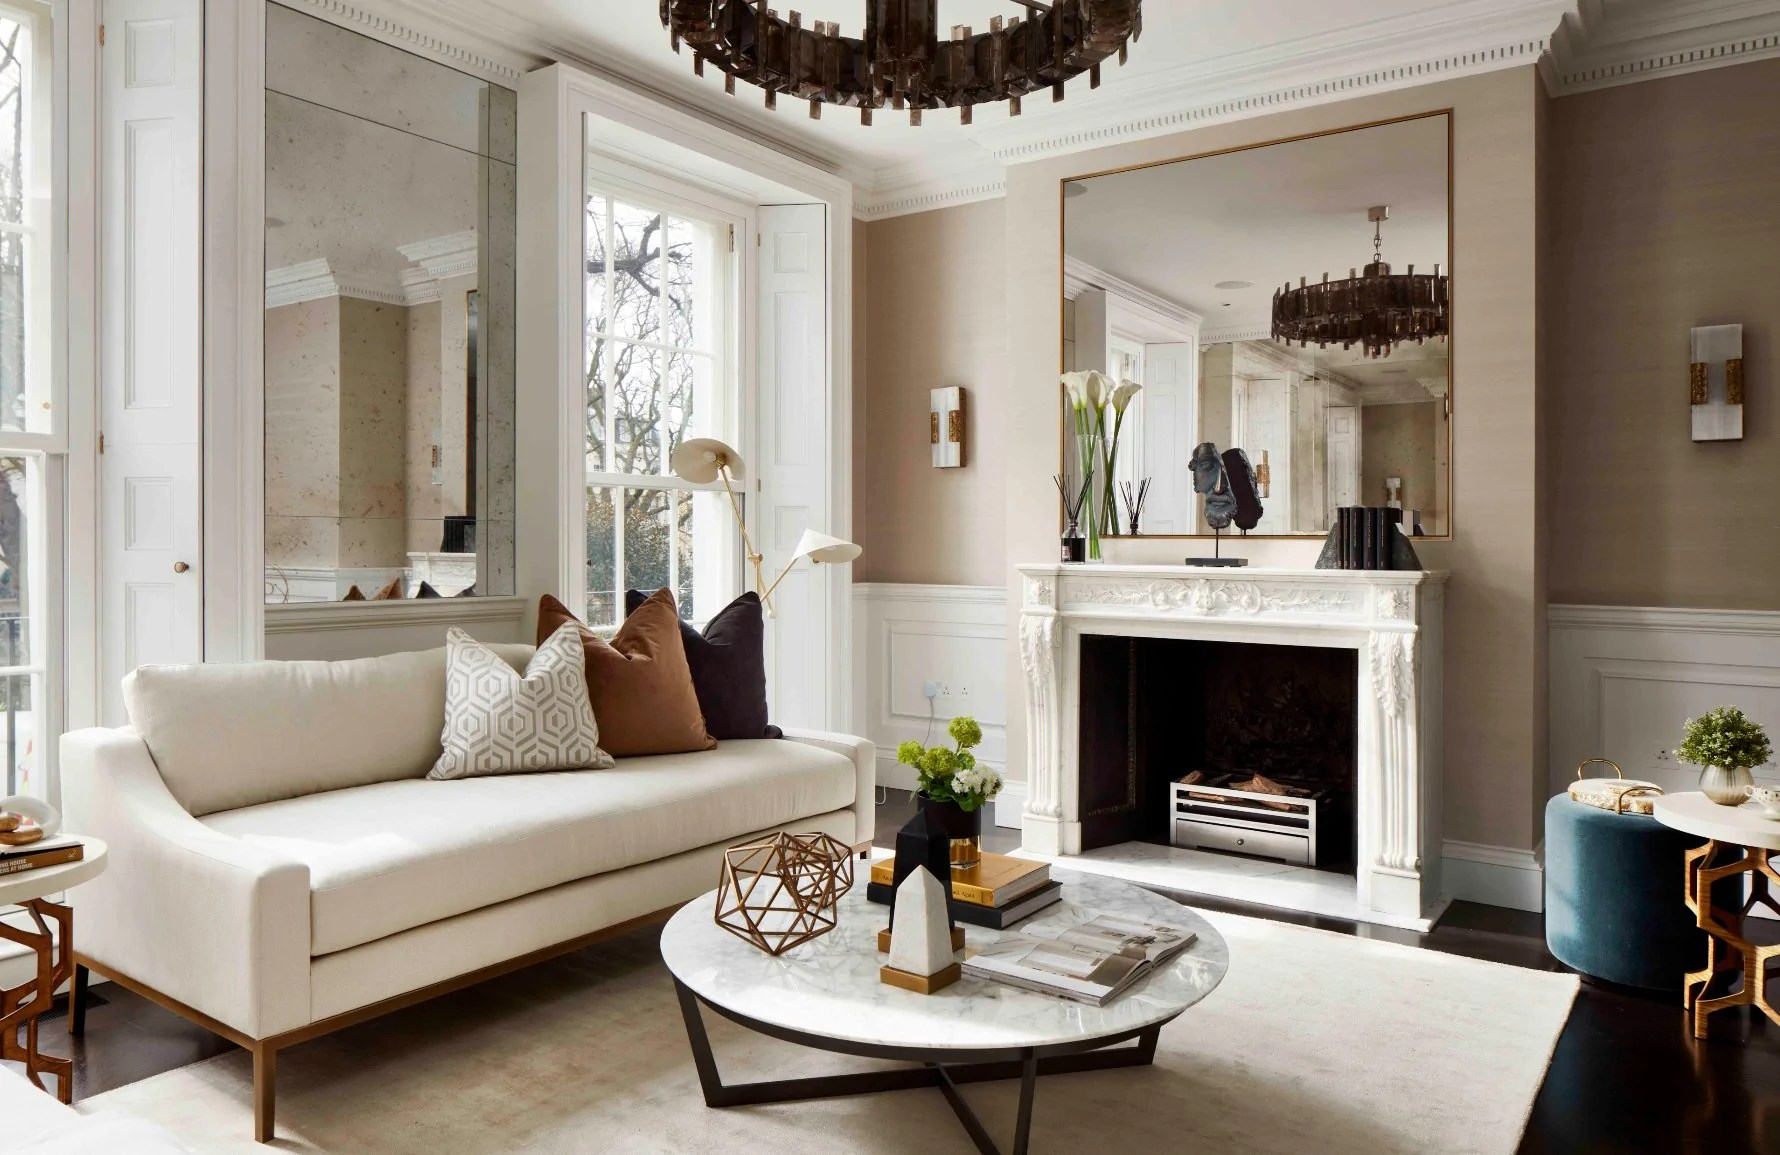 Top 10 Modern Interior Designers You Need To Know Luxdeco